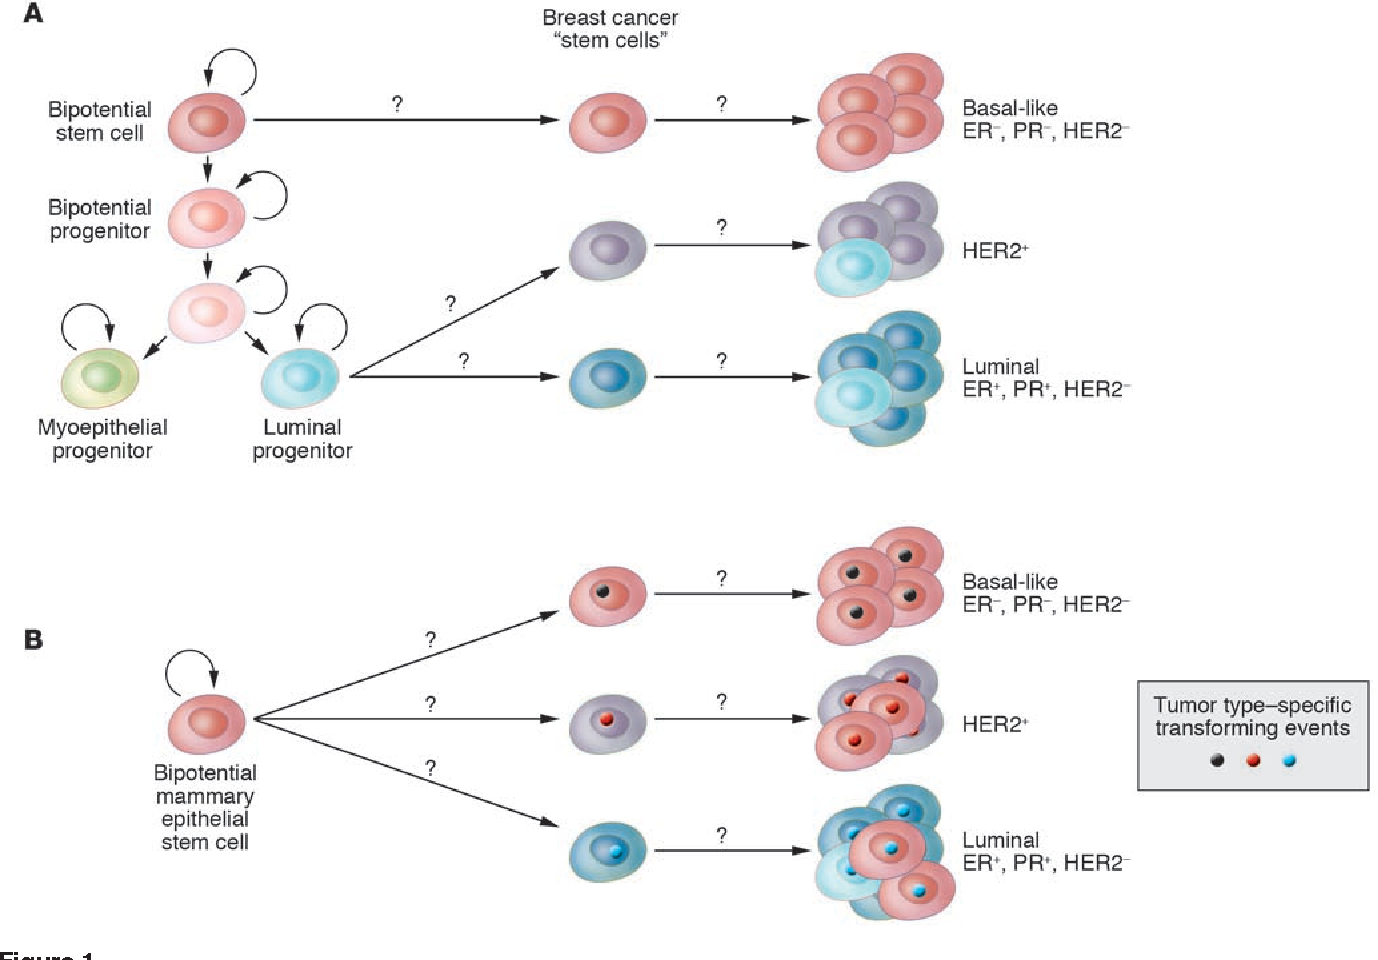 figure 1 from breast cancer origins and evolution semantic scholar